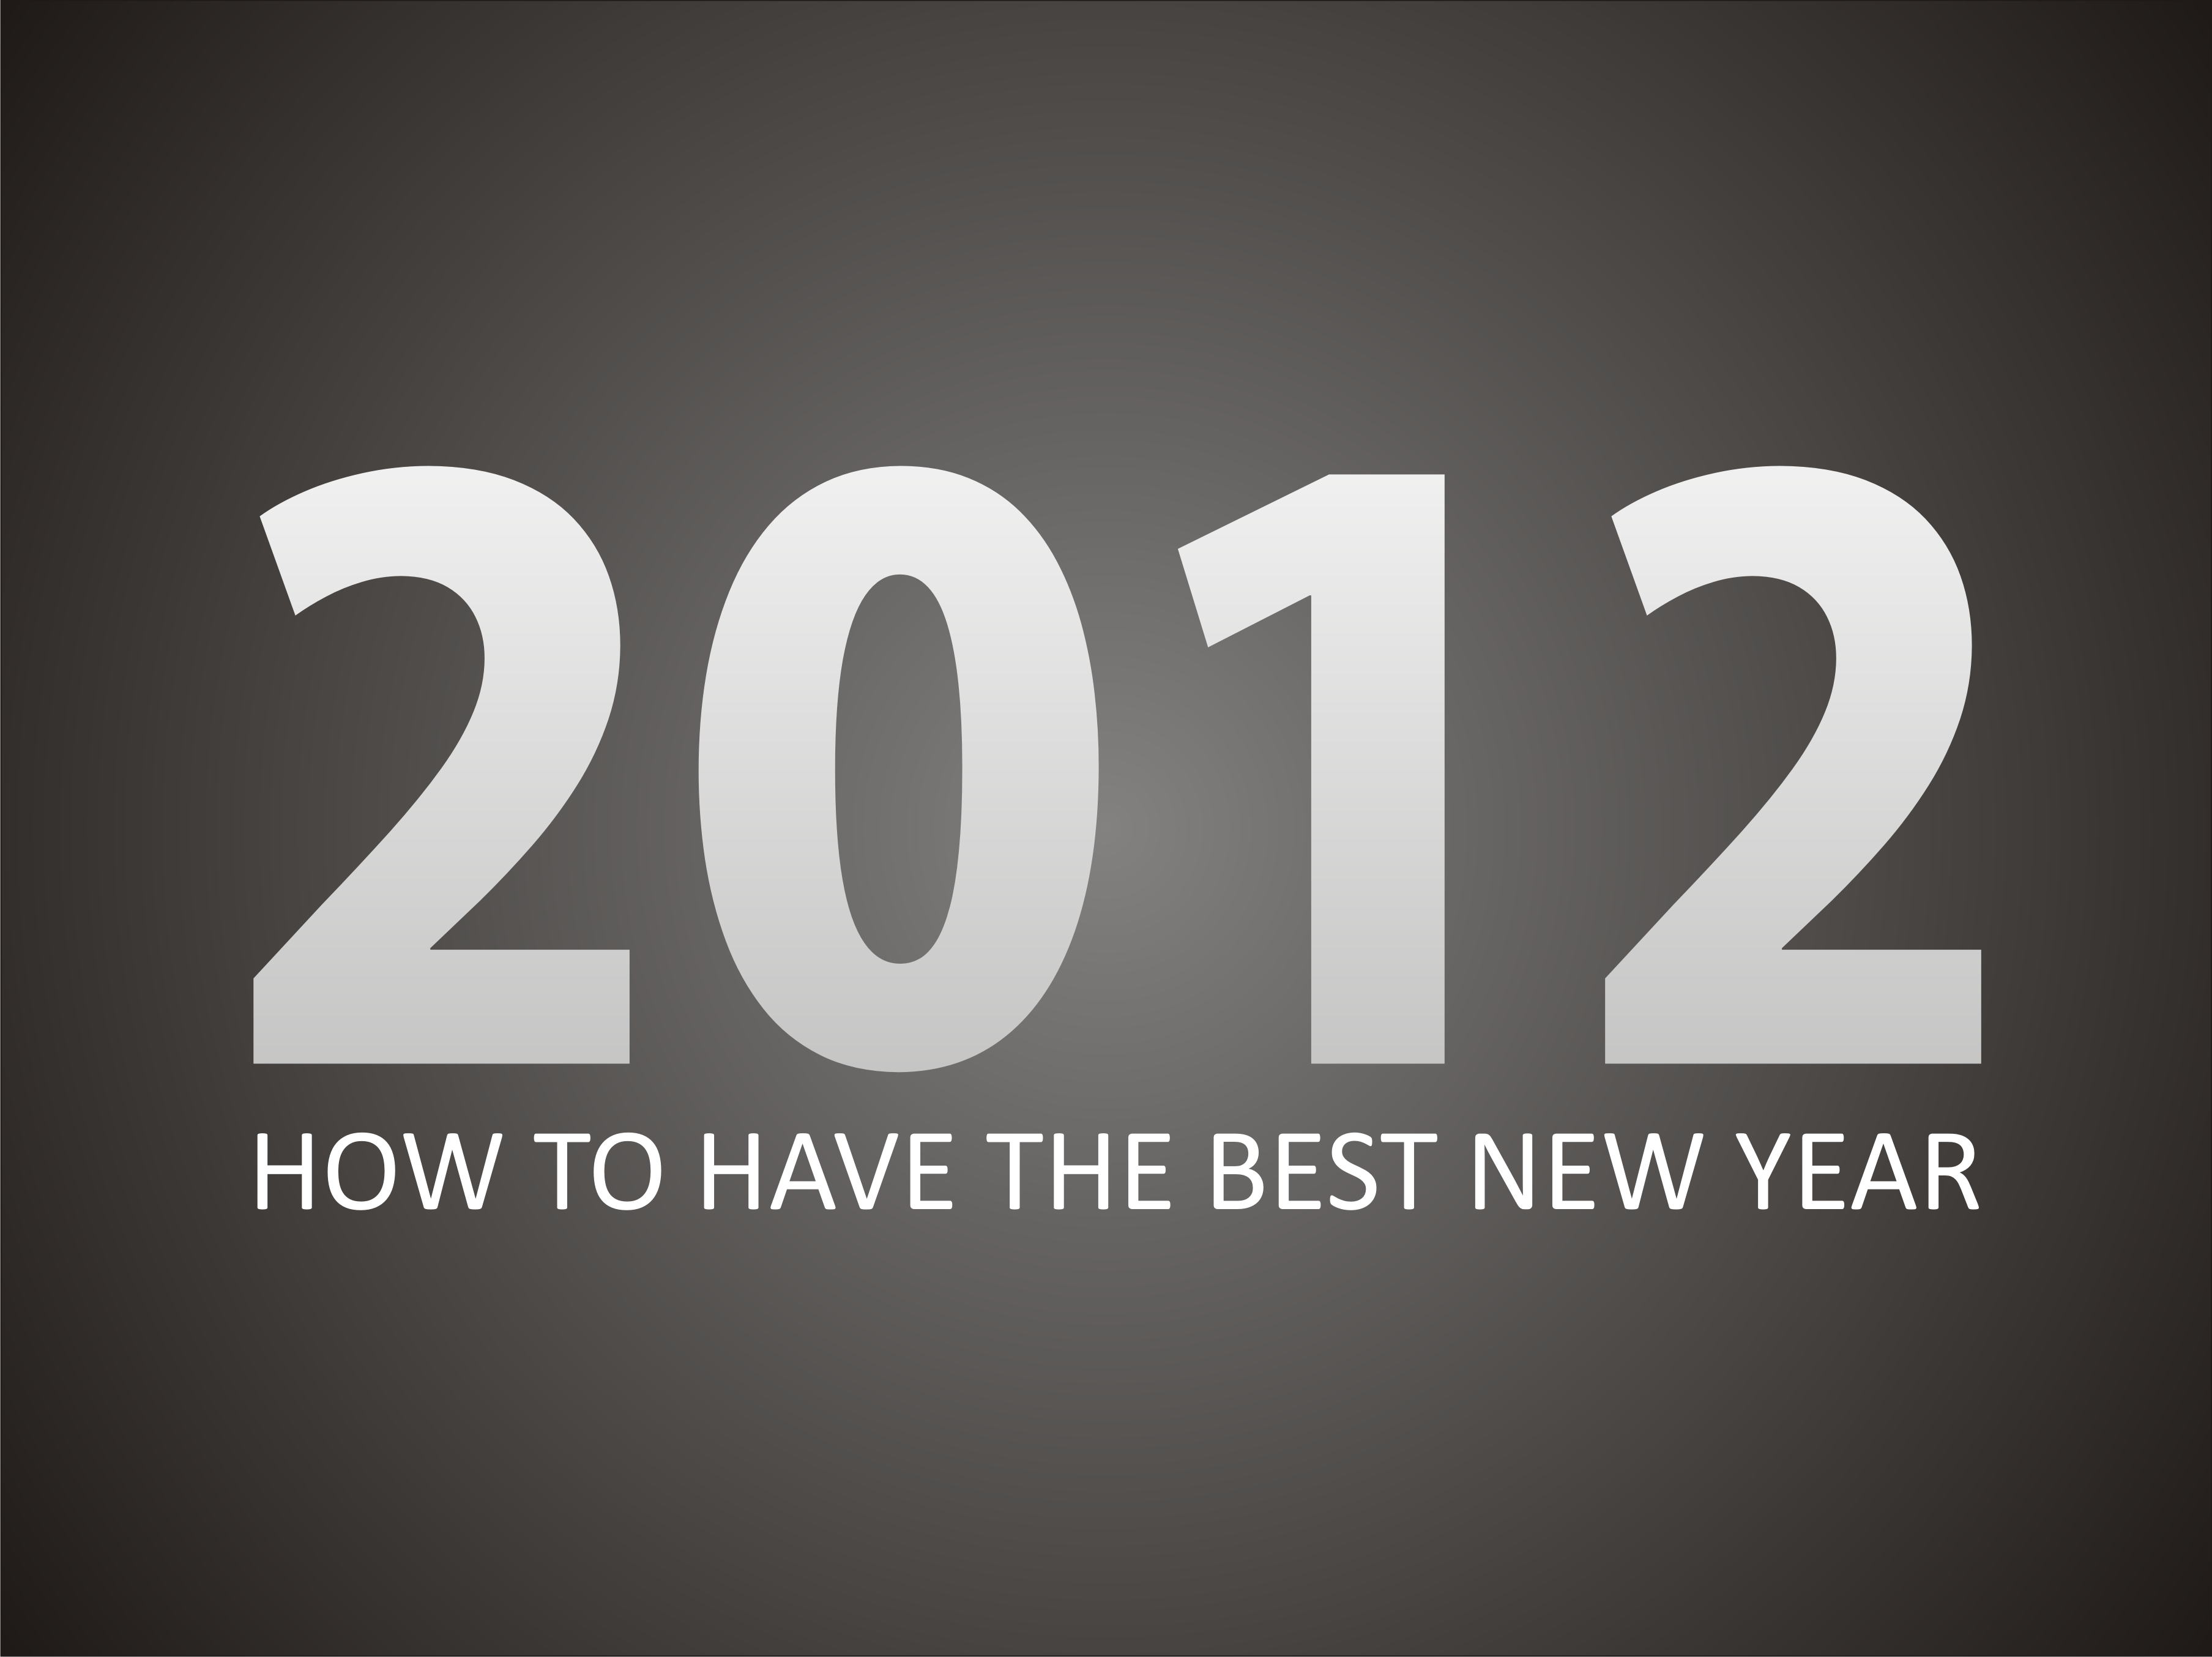 How To Have The Best New Year